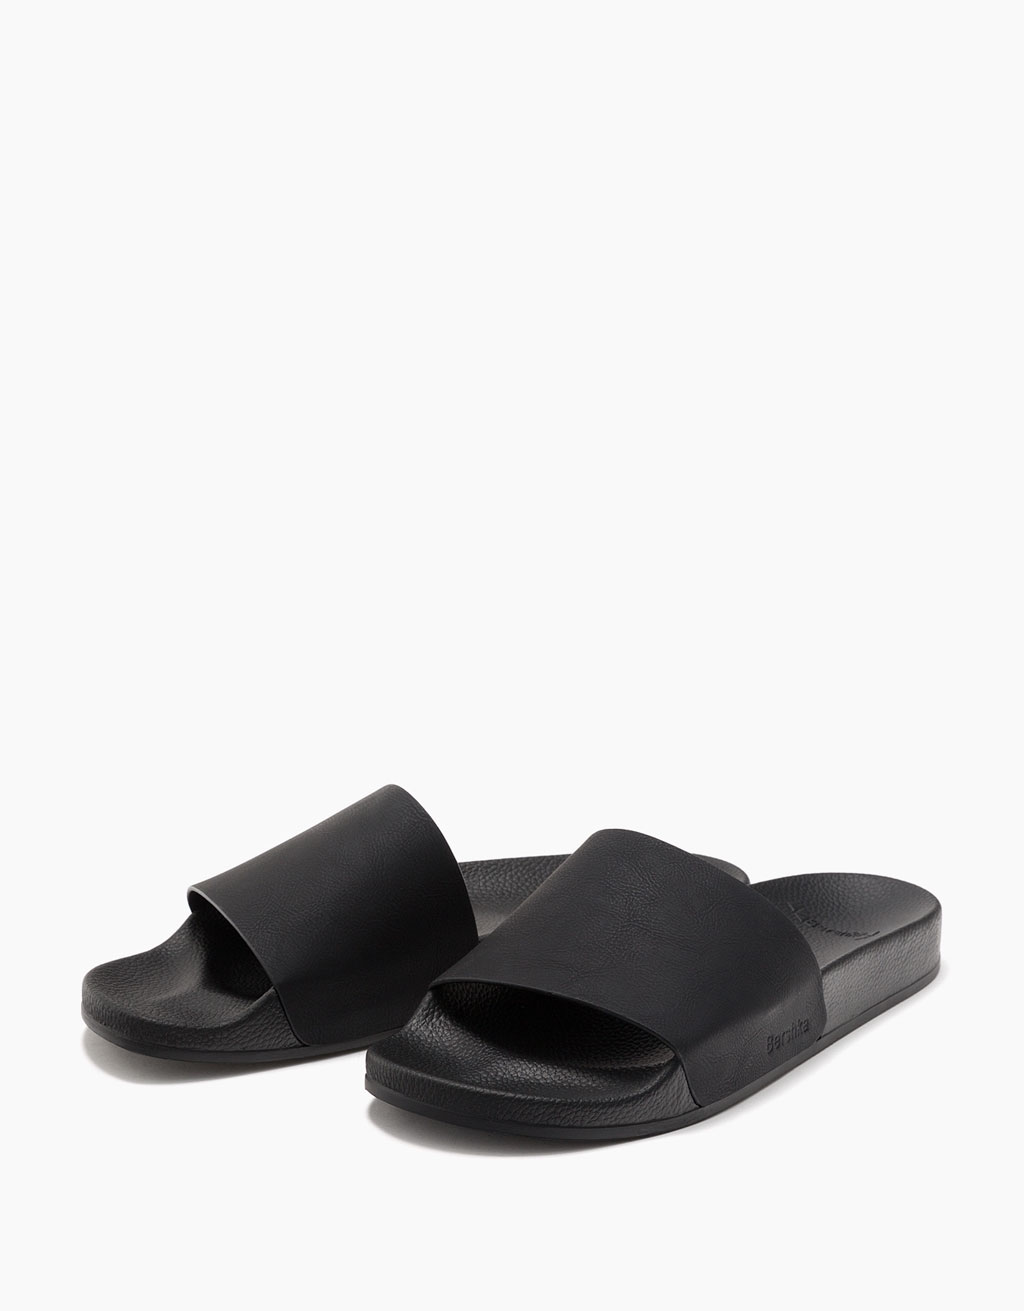 Men's black slides